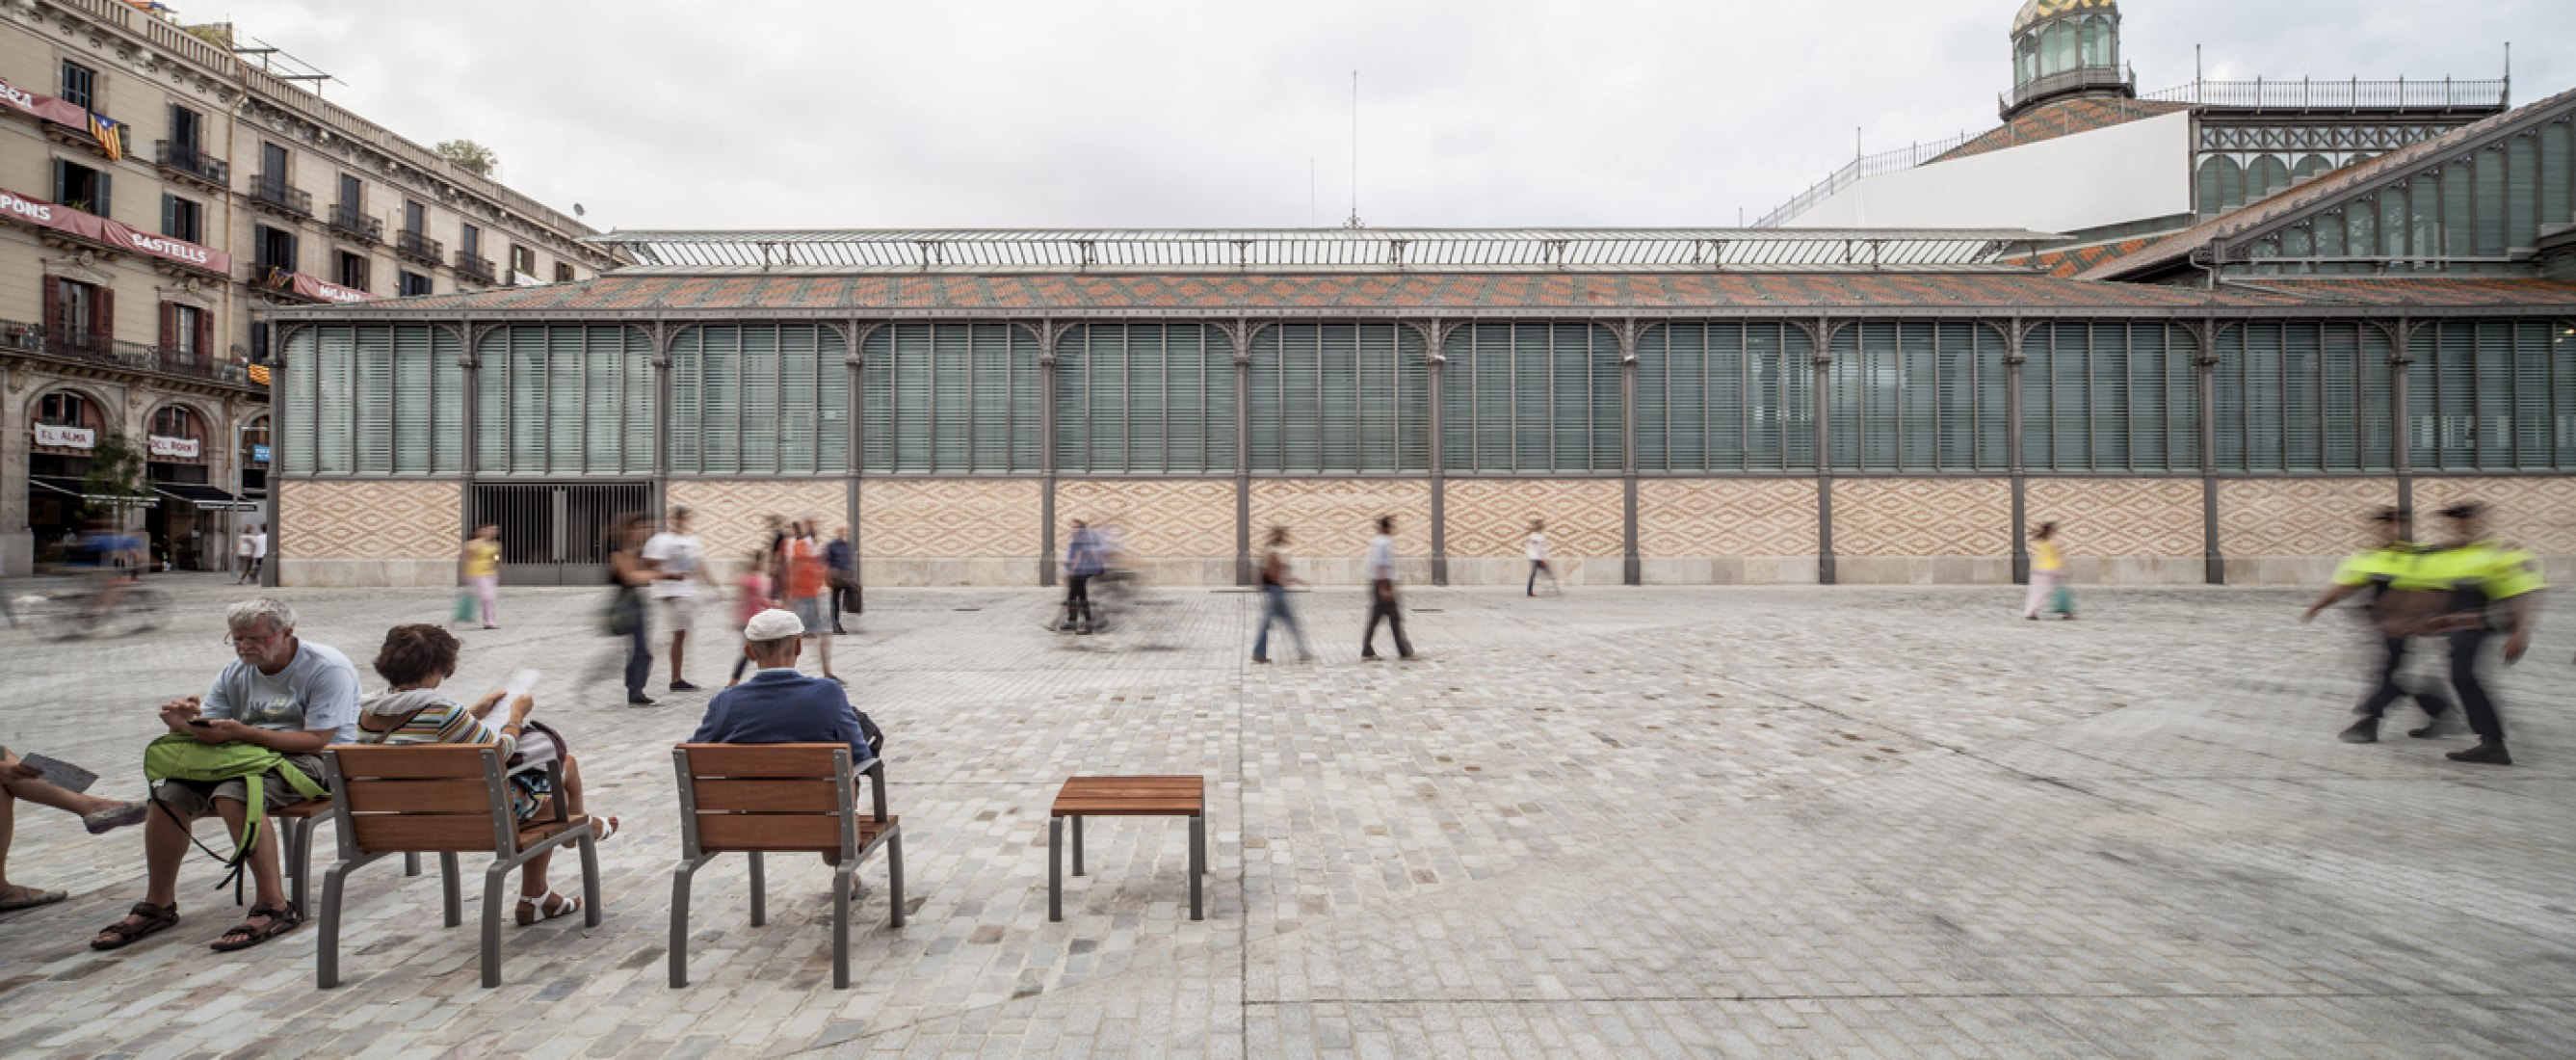 View of urbanization of the Mercat del Born's surroundings performed by Vora. Photography © Adrià Goula.